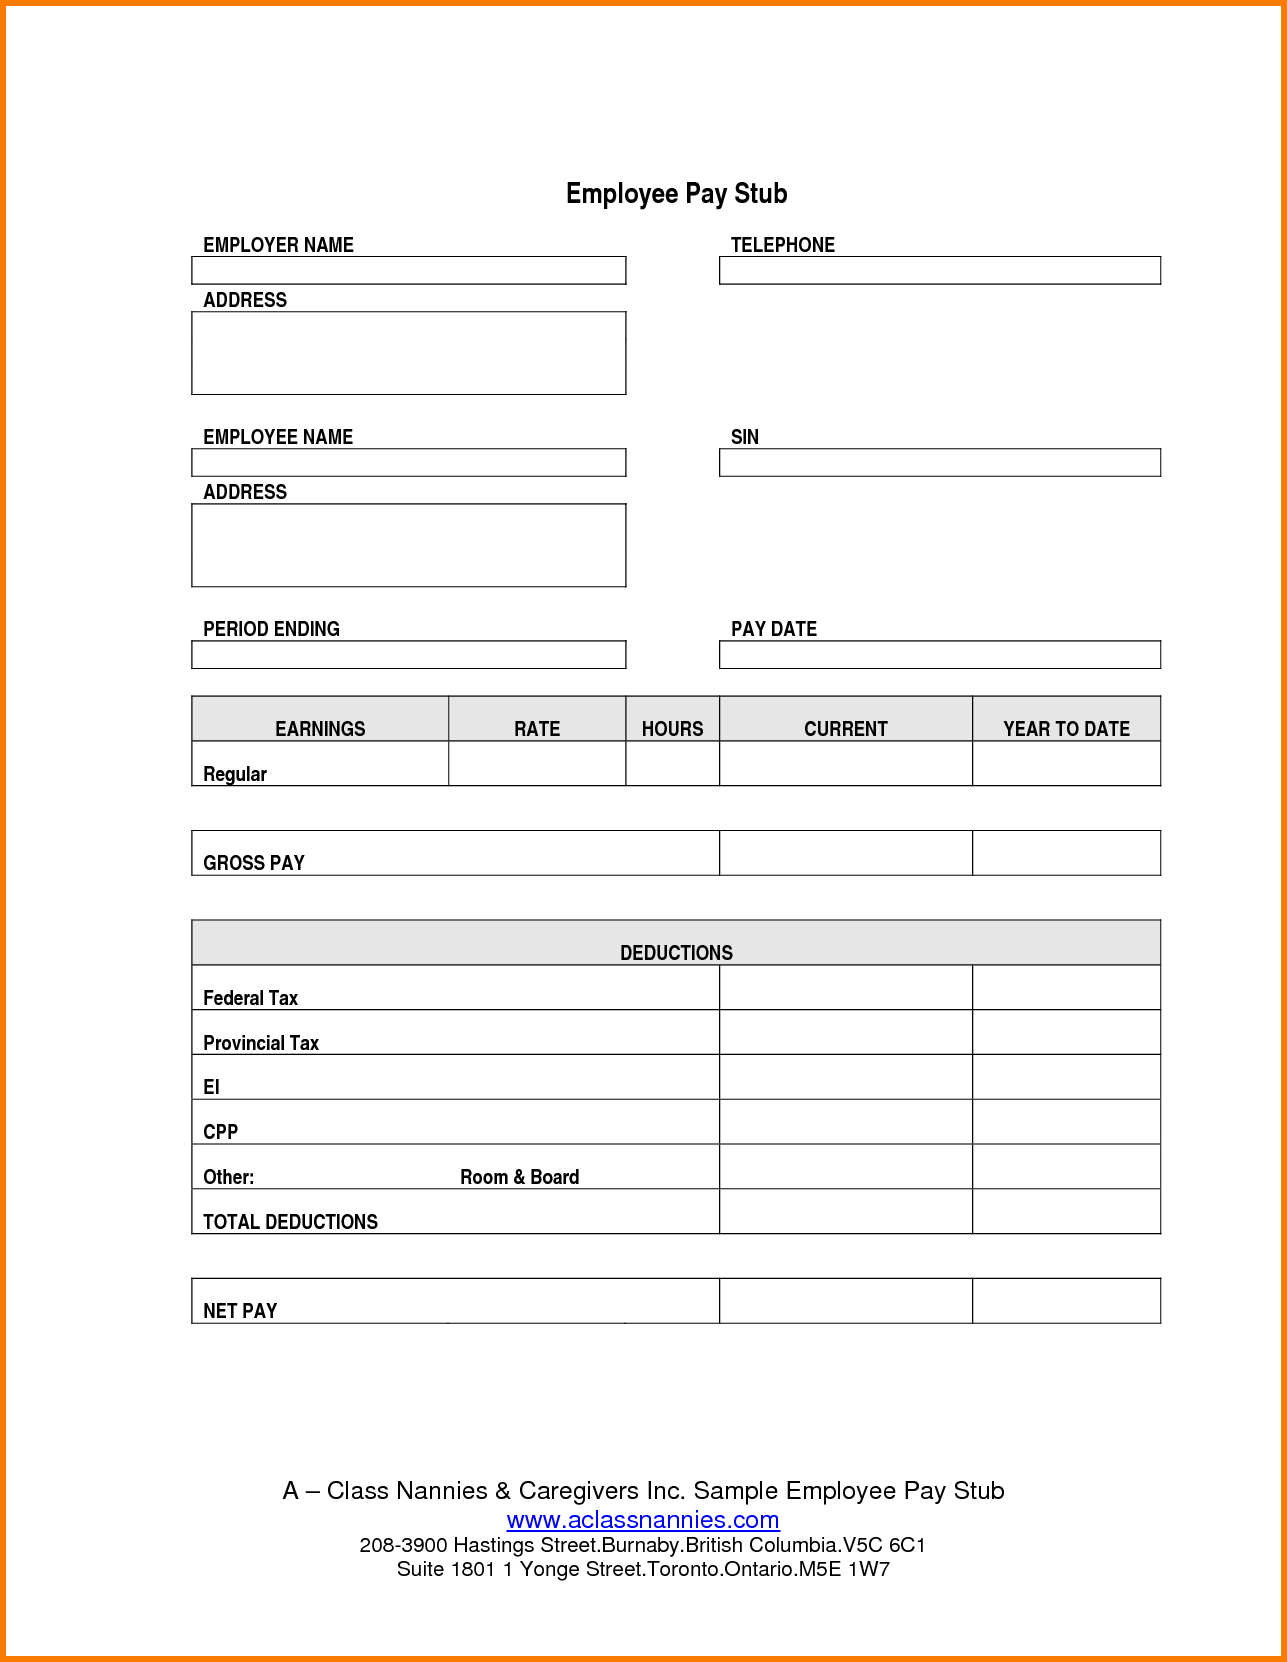 Free Blank Pay Stub Template Downloads With Printable Payroll Check - Free Printable Check Stubs Download